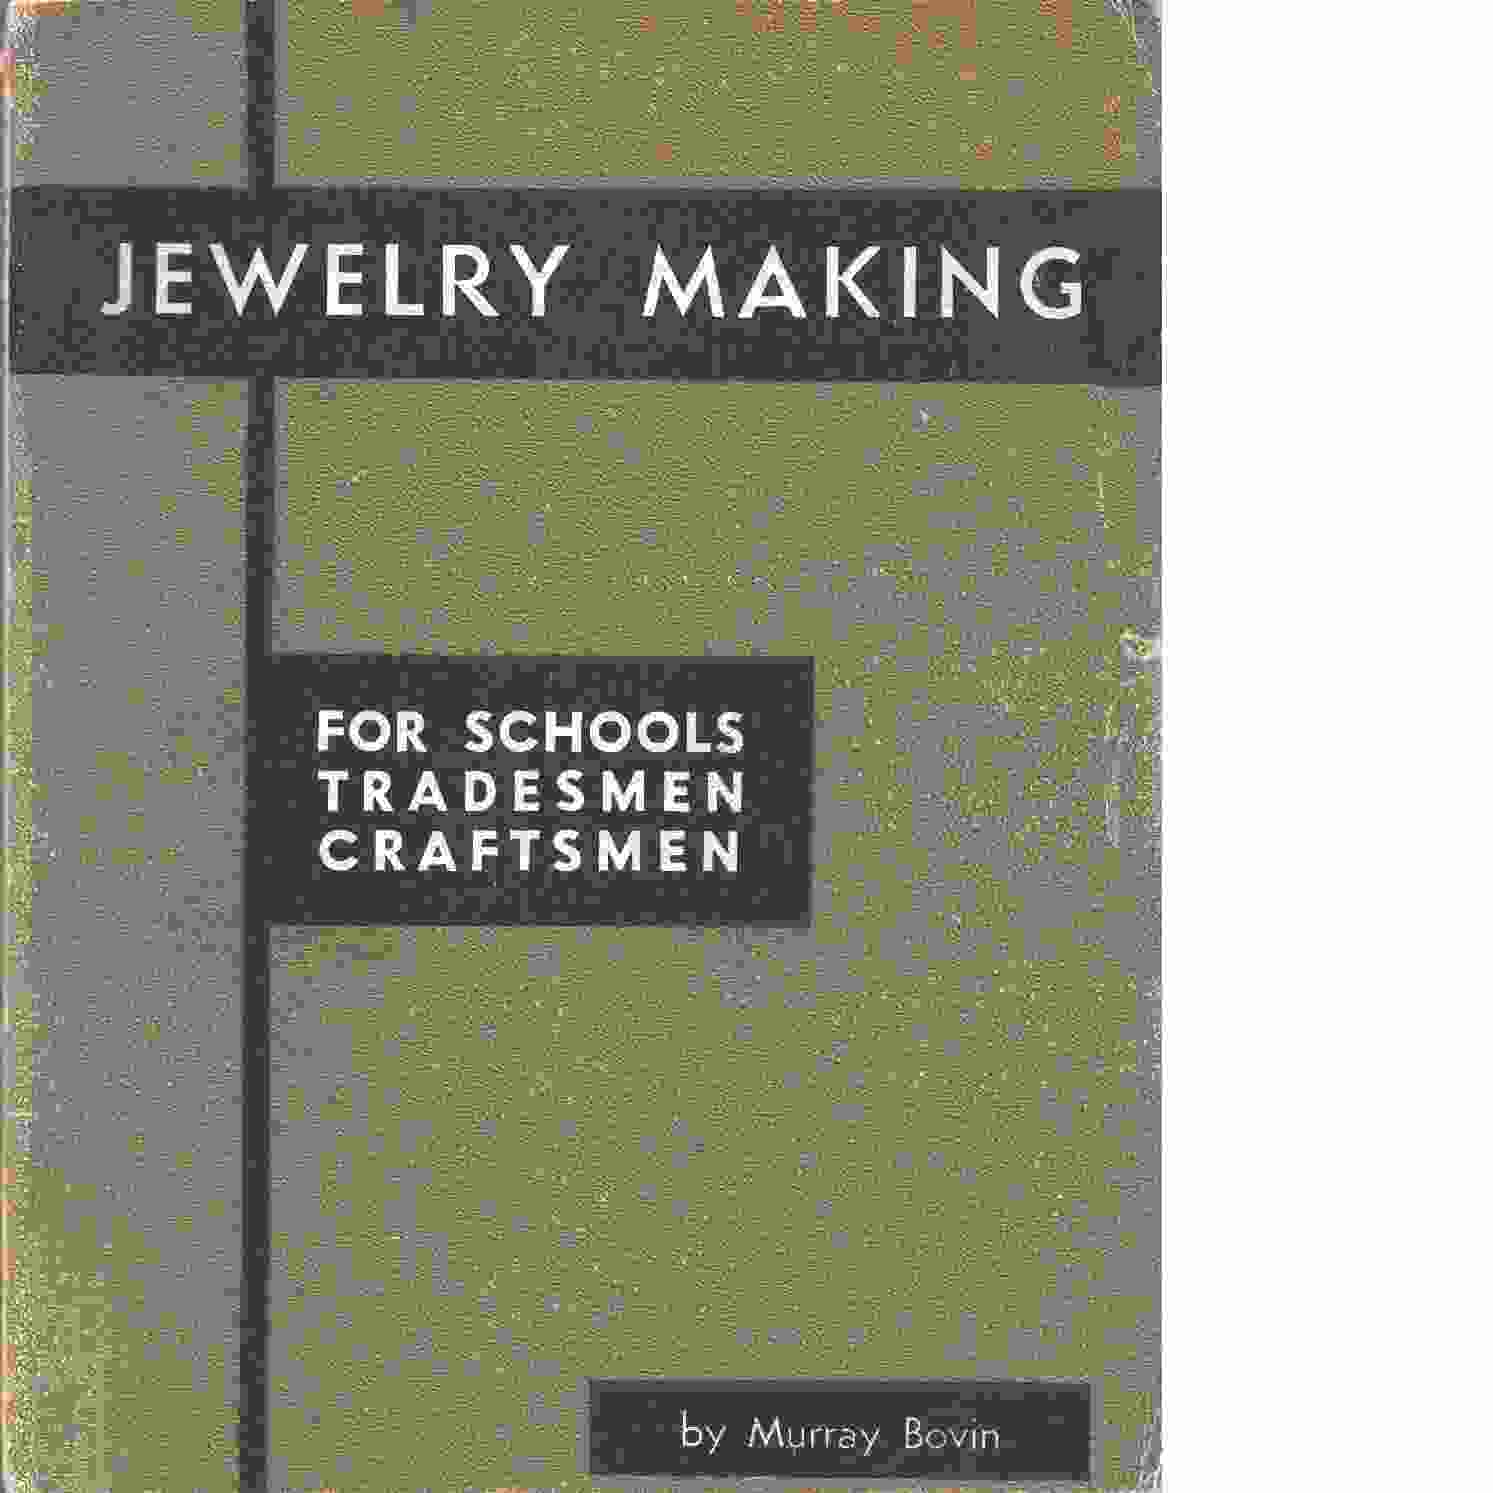 Jewelry Making: For Schools, Tradesmen, Craftsmen - Bovin Murray